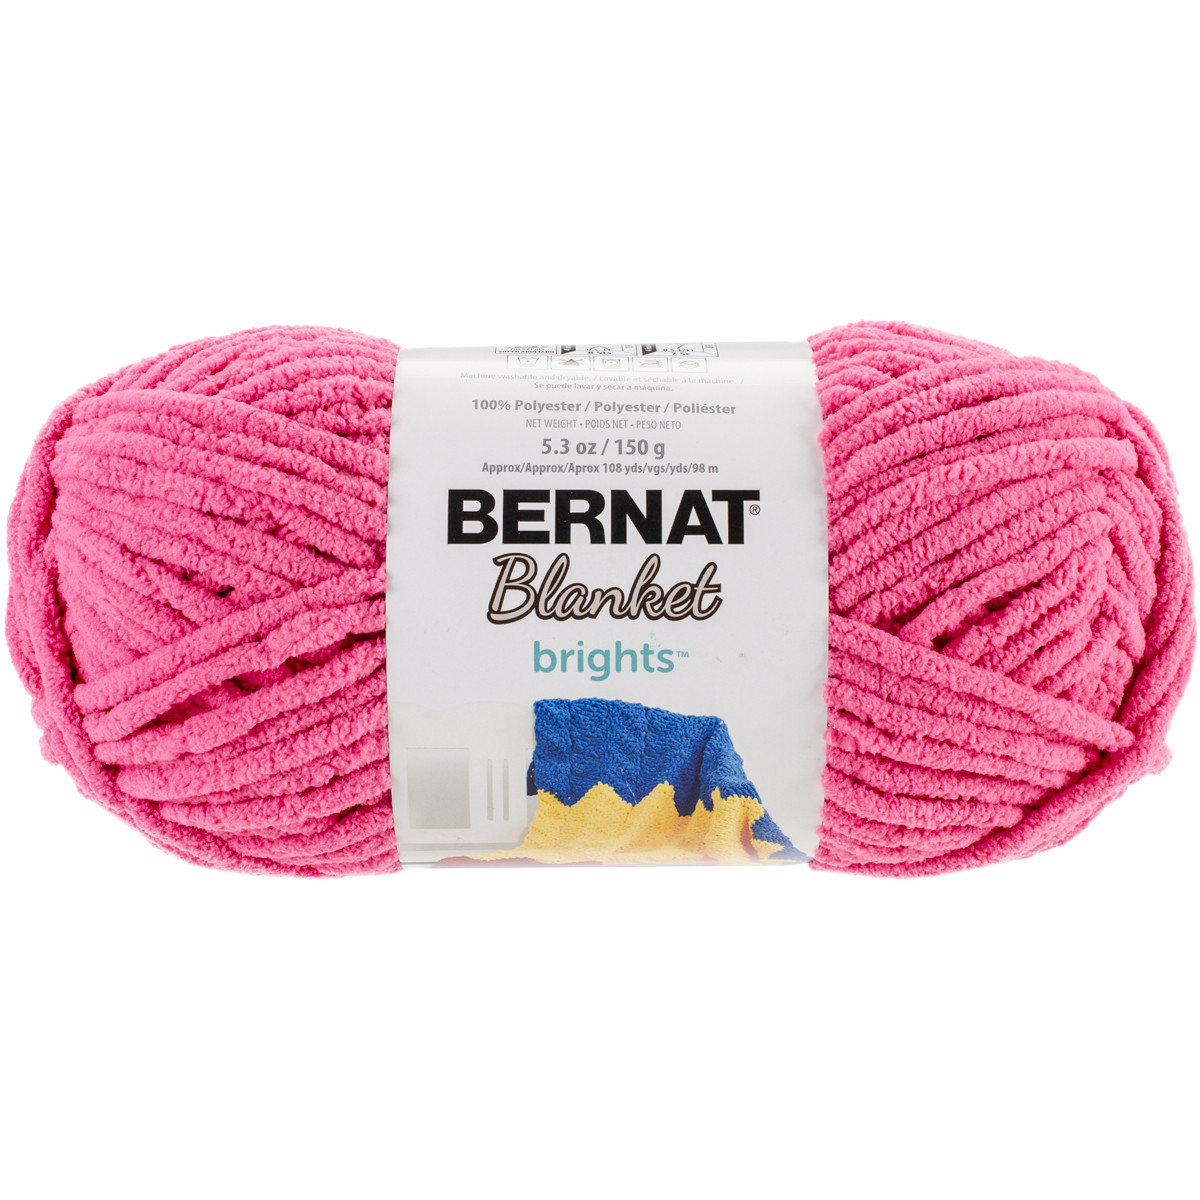 Awesome Cv Retail Llc On Walmart Seller Reviews Marketplace Rating Pink Camouflage Yarn Of Charming 42 Pics Pink Camouflage Yarn